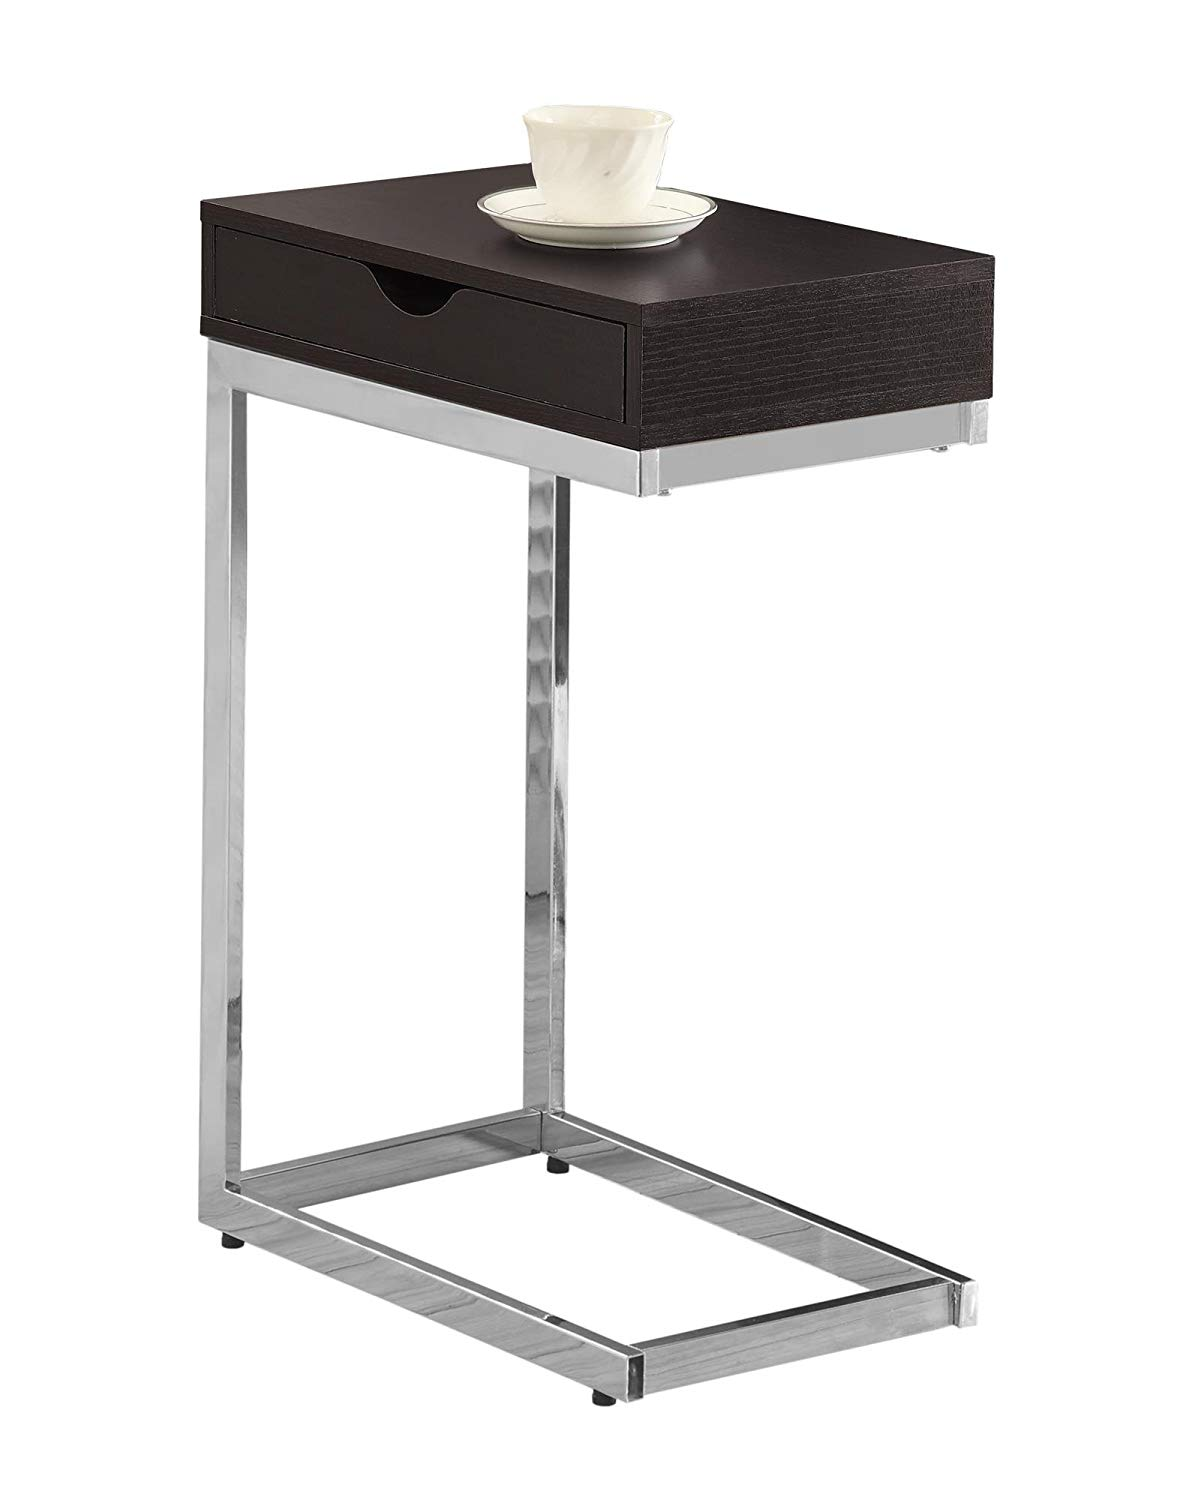 monarch specialties accent table with drawer grey chrome metal cappuccino kitchen dining barnwood pier one imports locations elm flooring chair design classics oversized end high